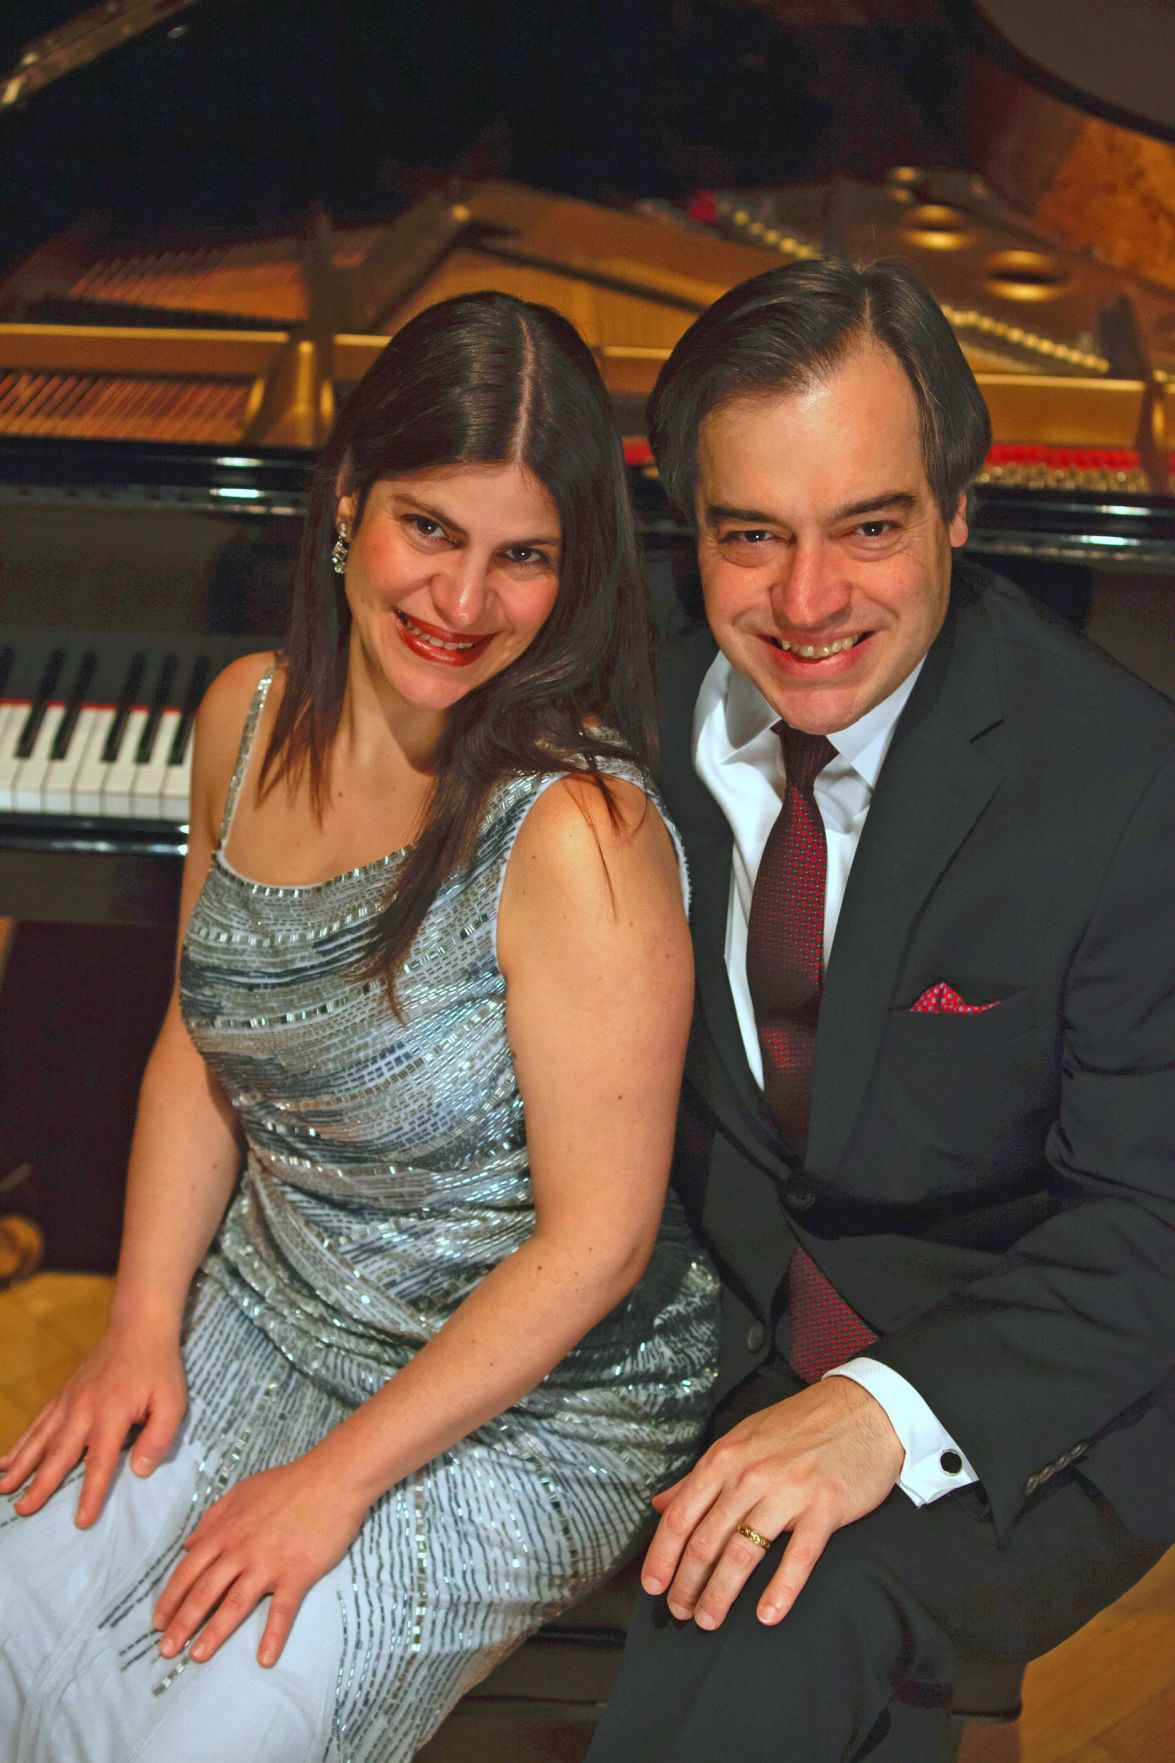 In Lakeville, Hotchkiss Summer Portals program returns, with gifted pianists